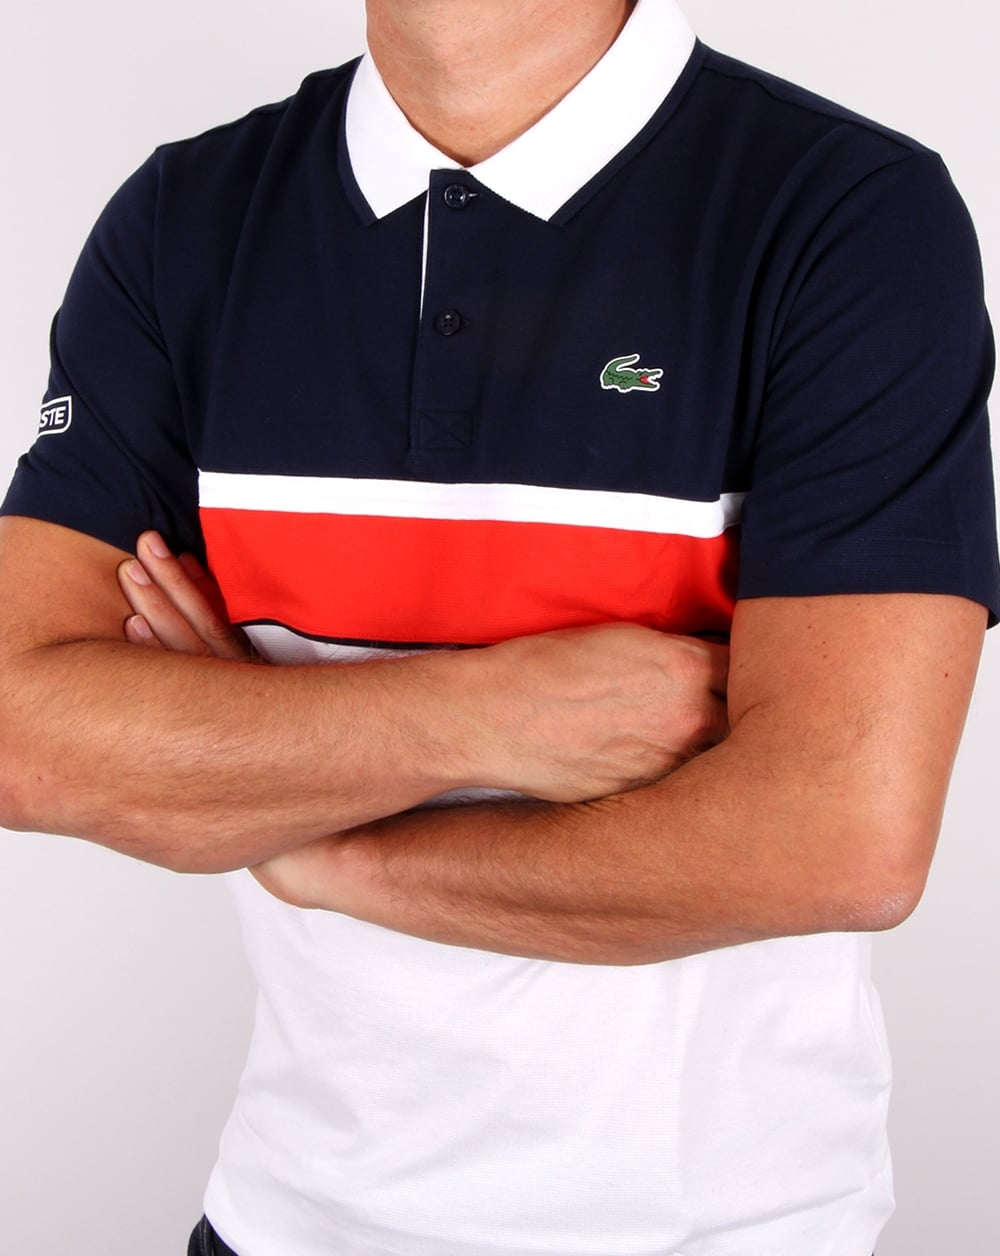 lacoste sport jacquard collar polo shirt white navy red men 39 s. Black Bedroom Furniture Sets. Home Design Ideas